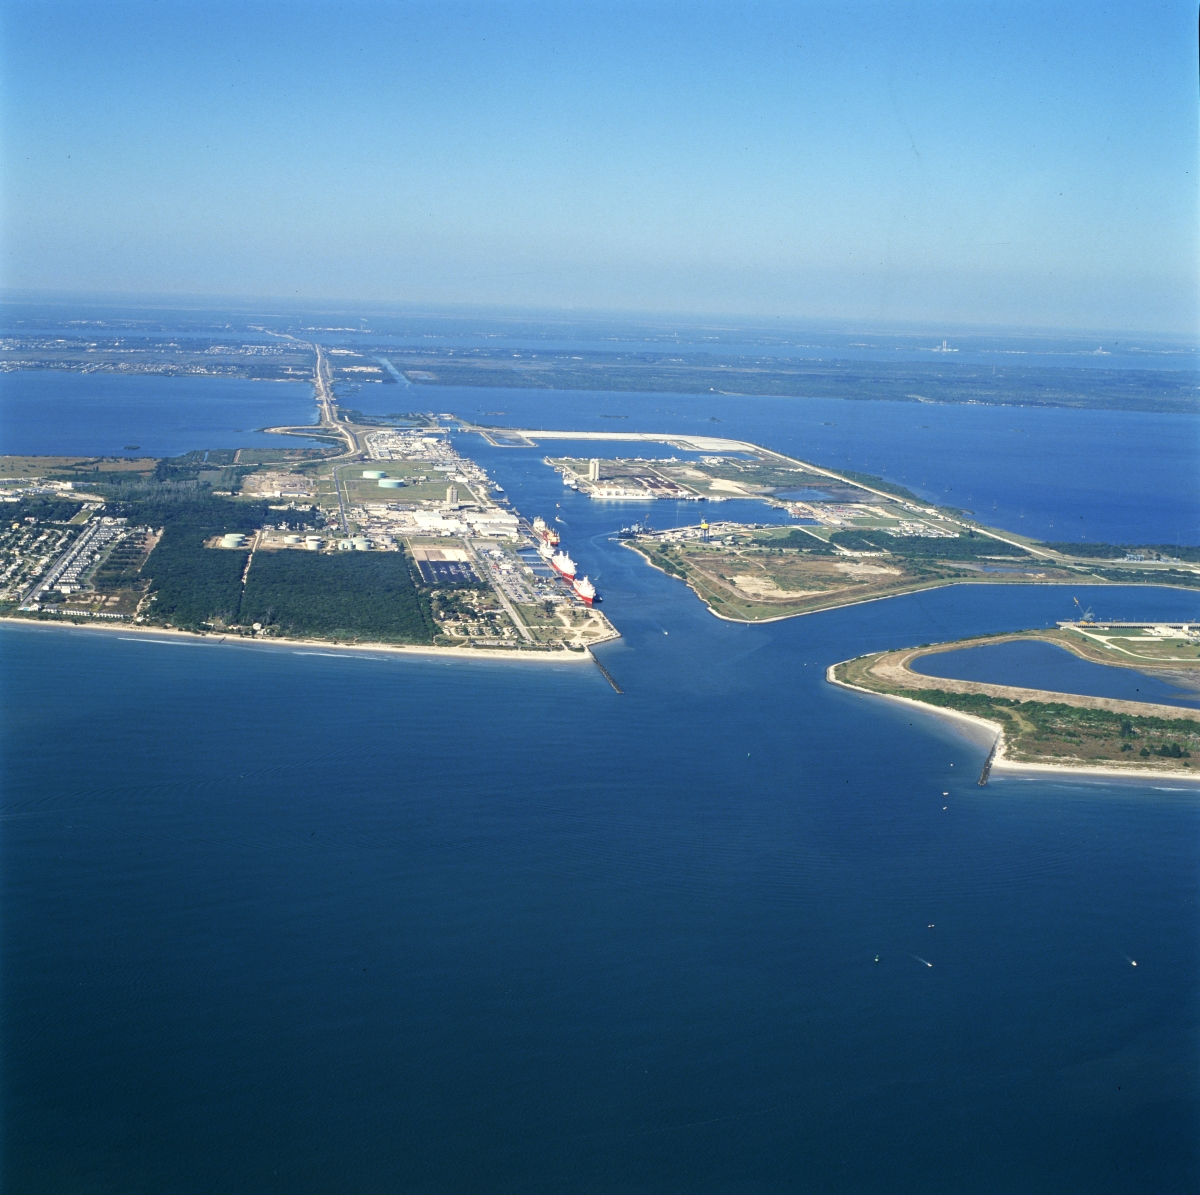 Aerial view looking west at Port Canaveral.